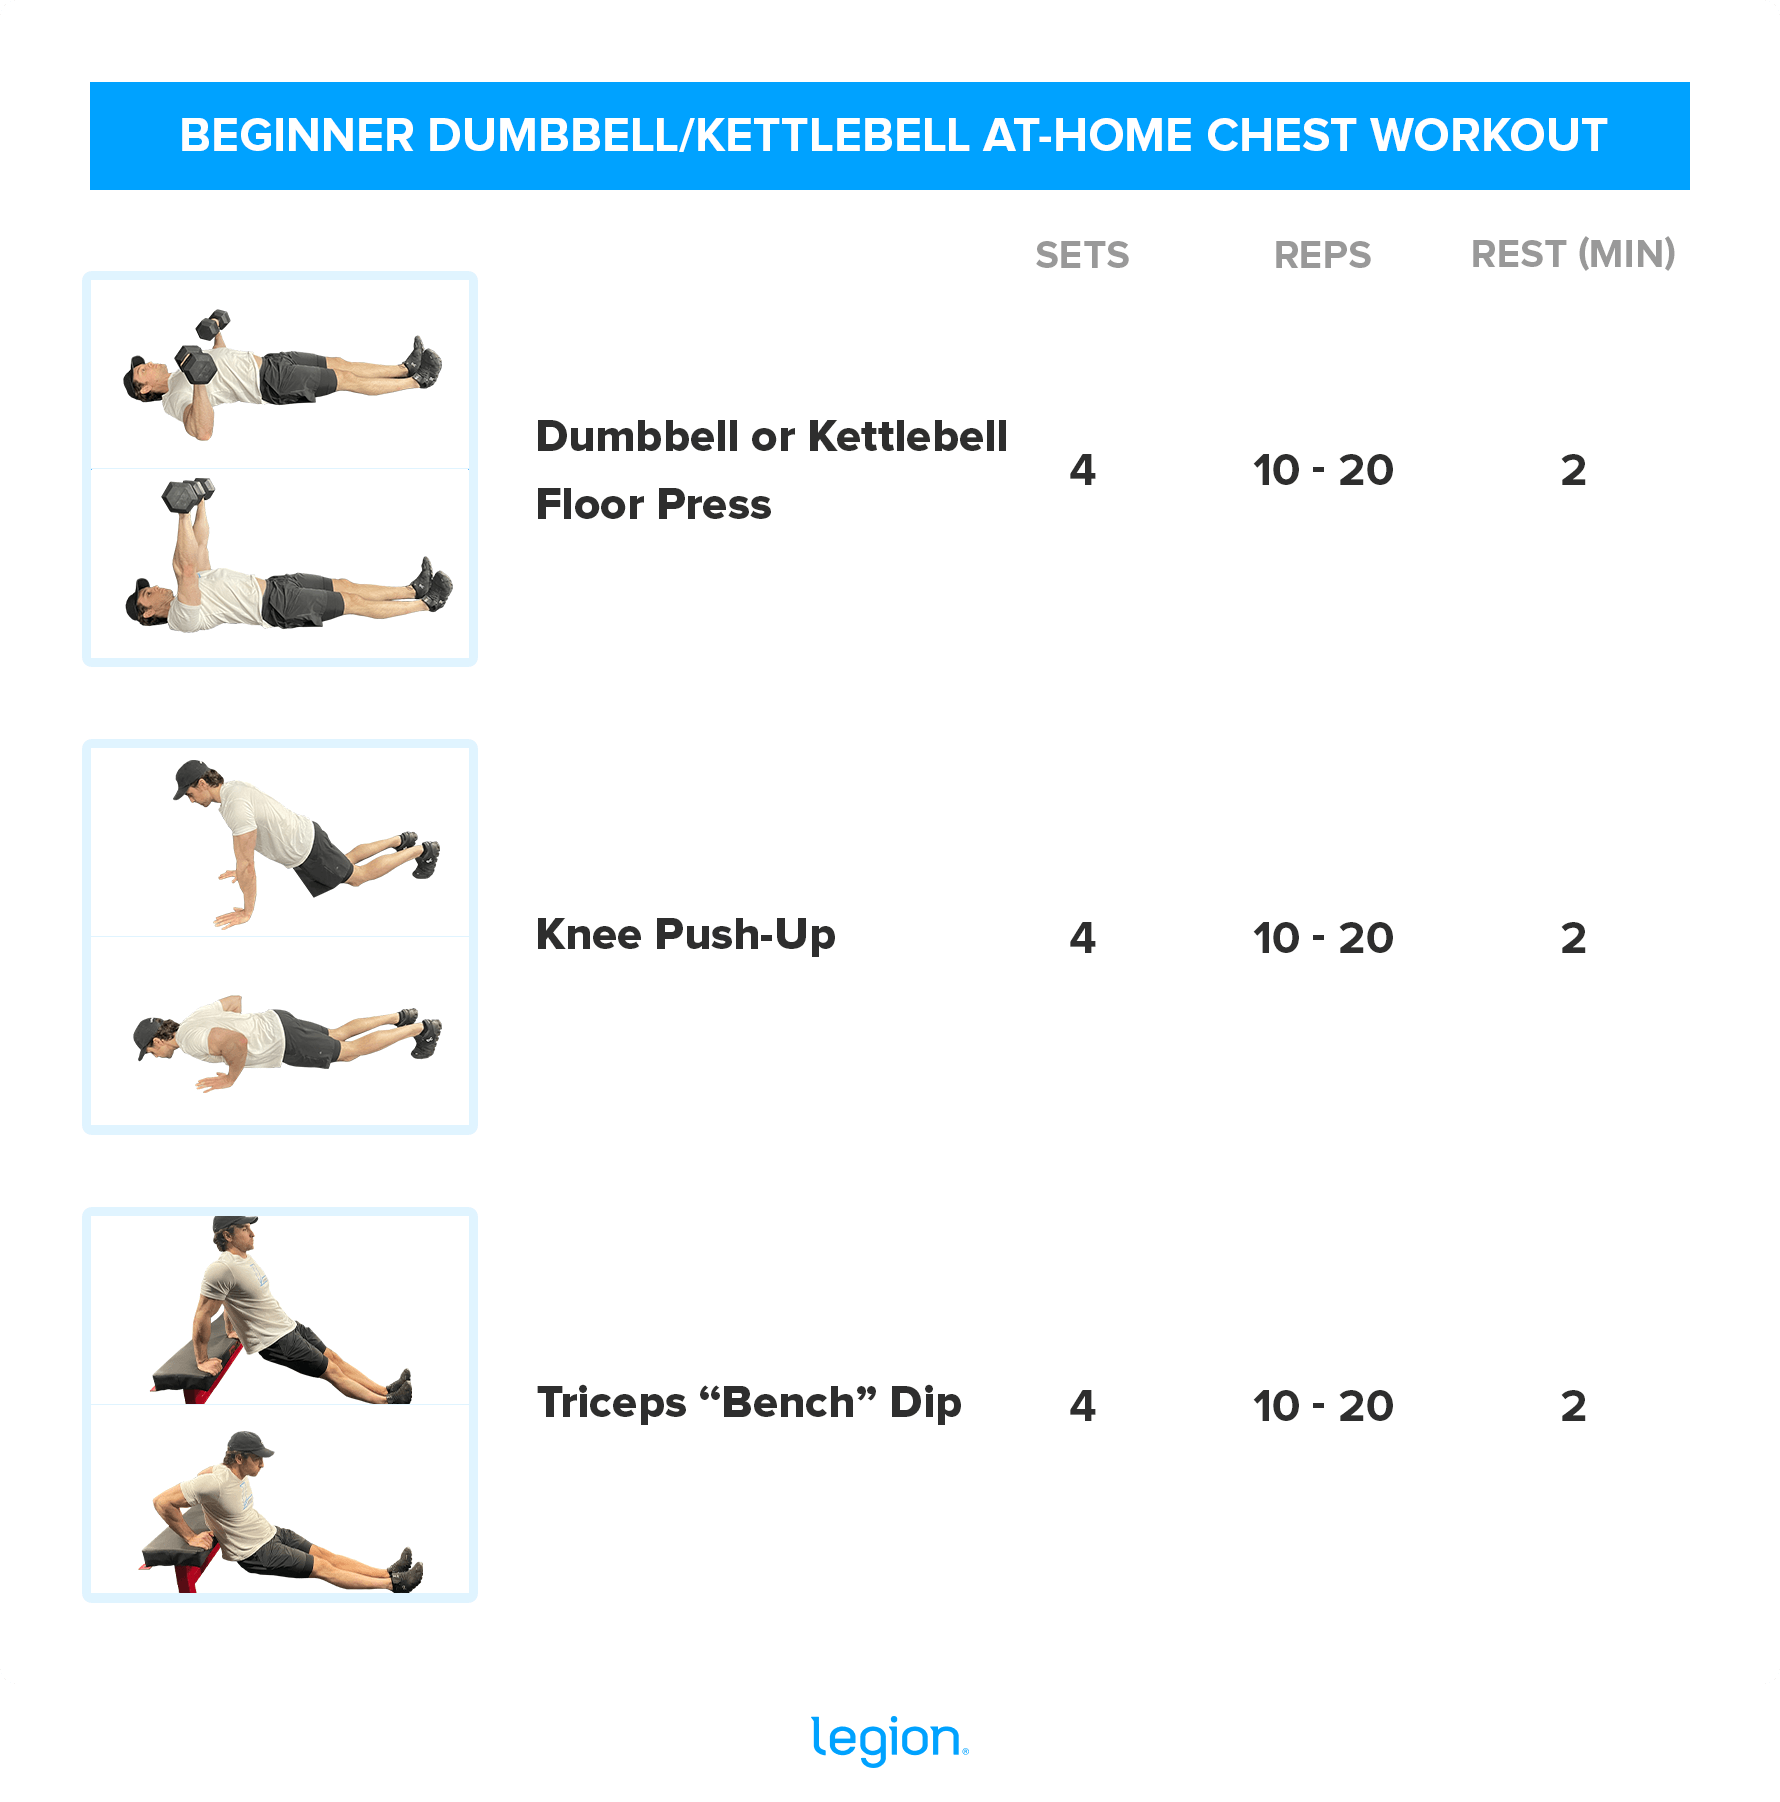 BEGINNER DUMBBELL/KETTLEBELL AT-HOME CHEST WORKOUT